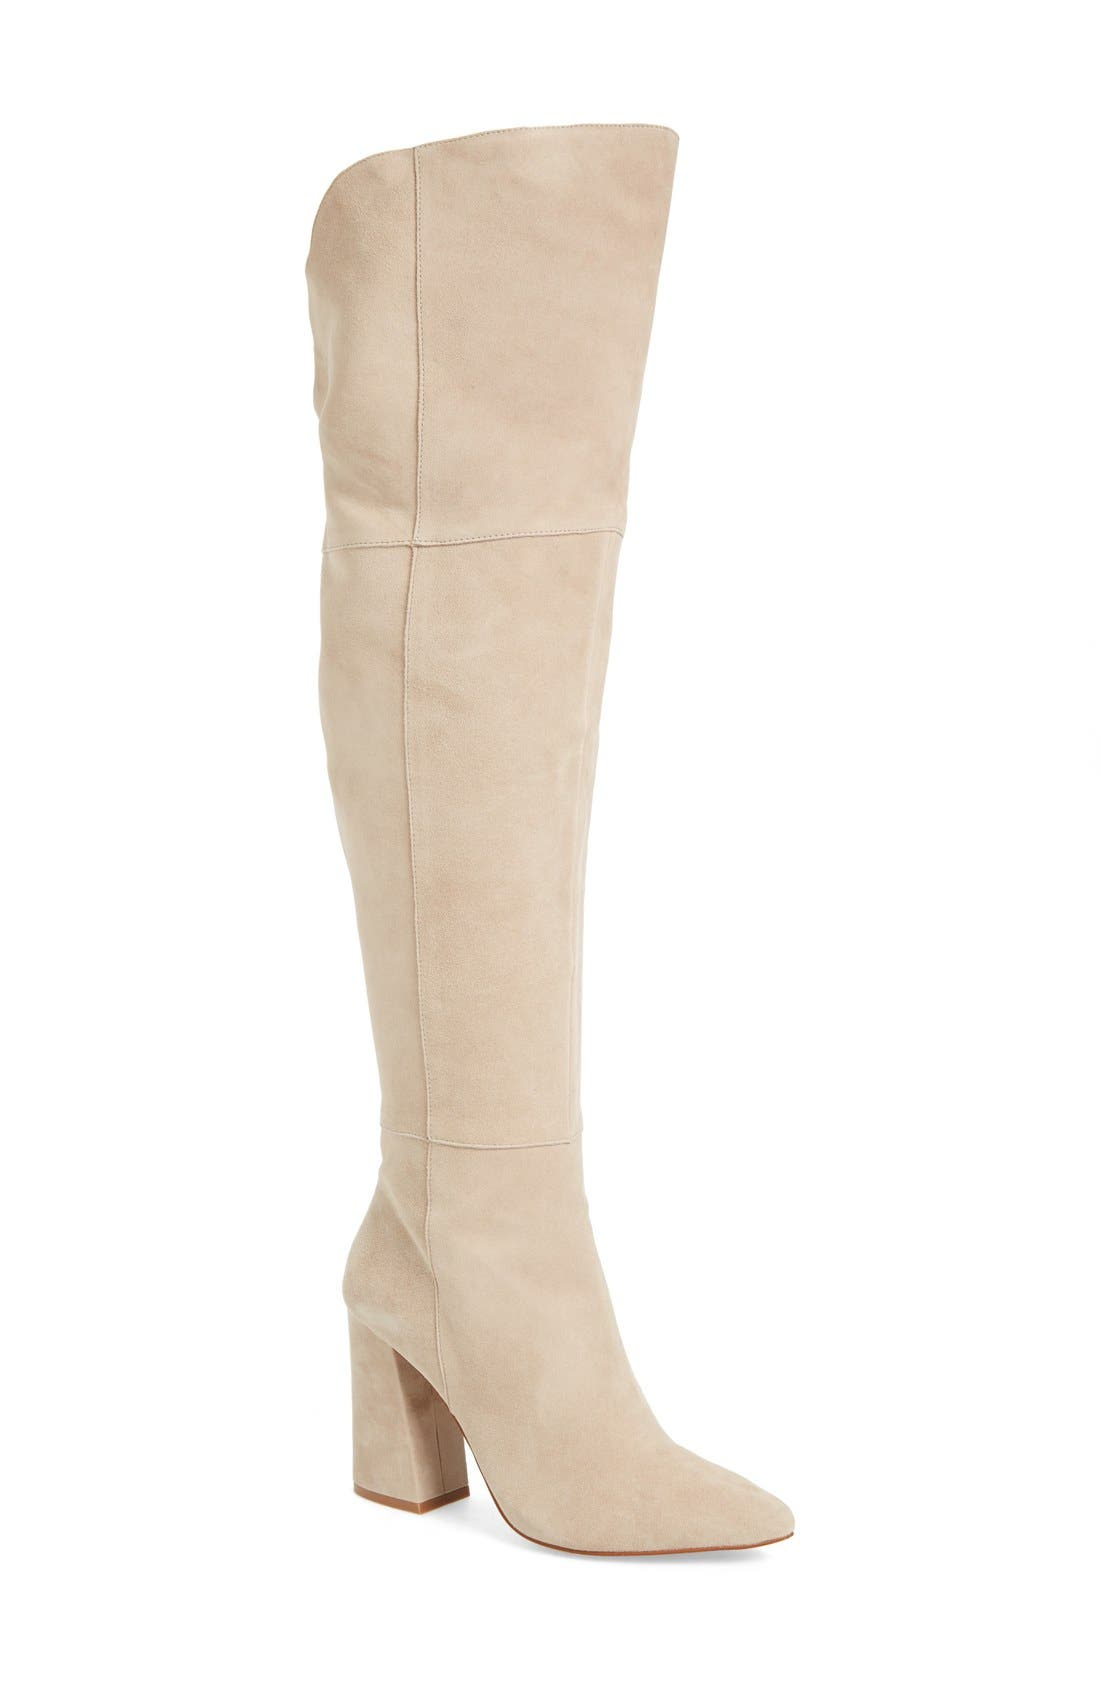 Alternate Image 1 Selected - Kristin Cavallari 'Saffron' Over the Knee Boot (Women)